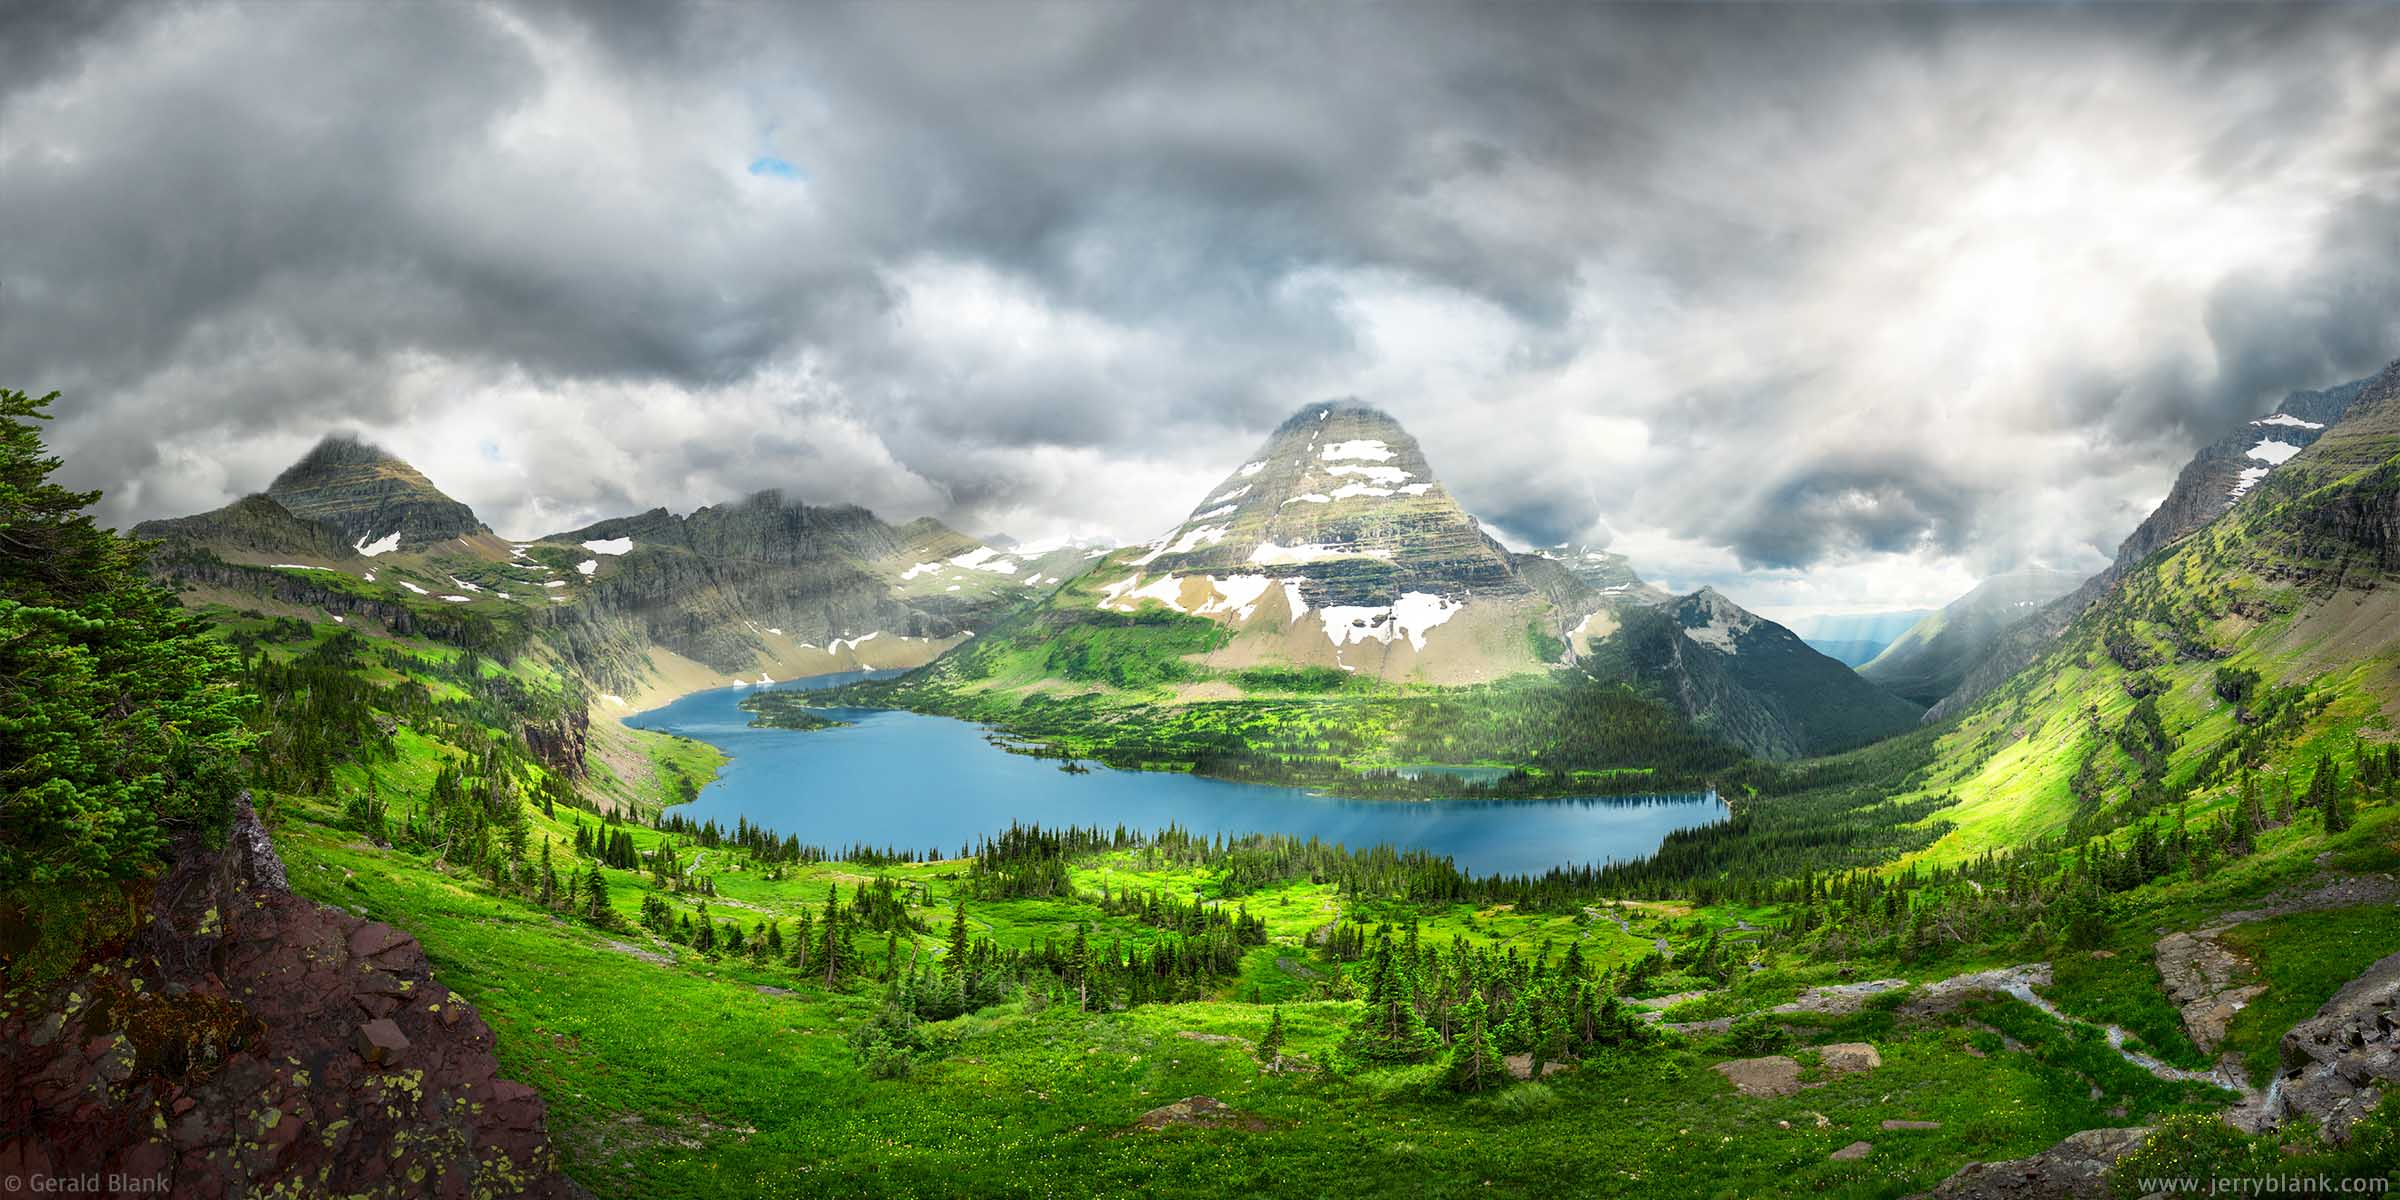 #24848 - A panoramic view of Hidden Lake in Glacier National Park, Montana, captured as afternoon clouds begin to envelop Bearhat Mountain and the ridge of the Continental Divide - photo by Jerry Blank